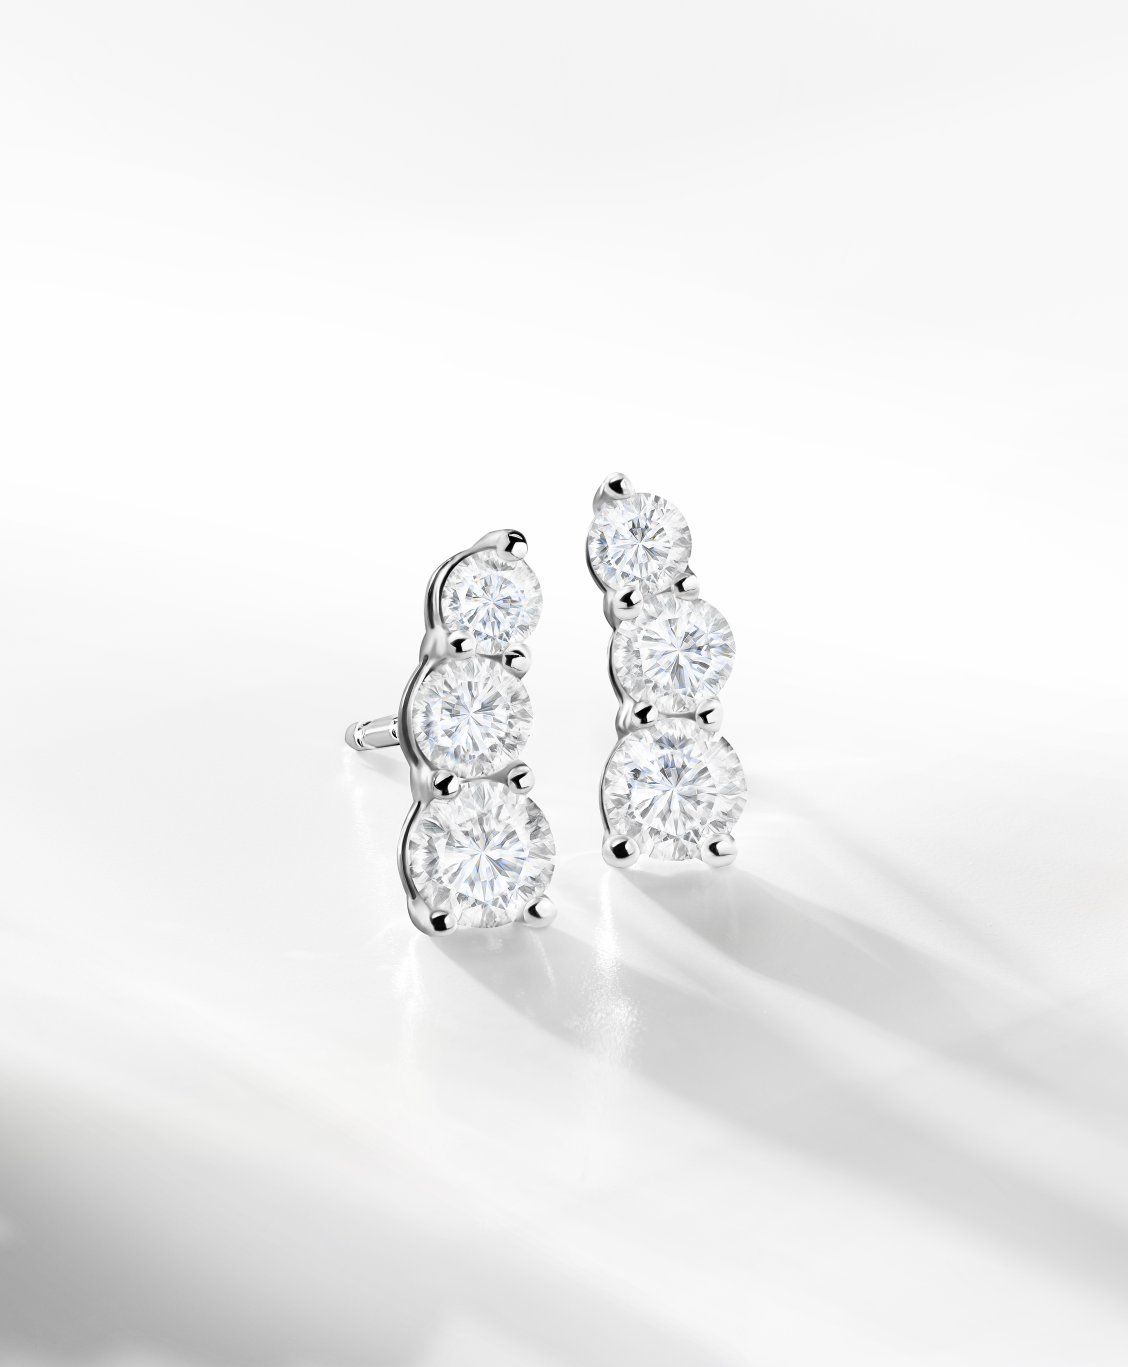 5c87492ff These three-stone diamond earrings are a gift she'll truly treasure forever.